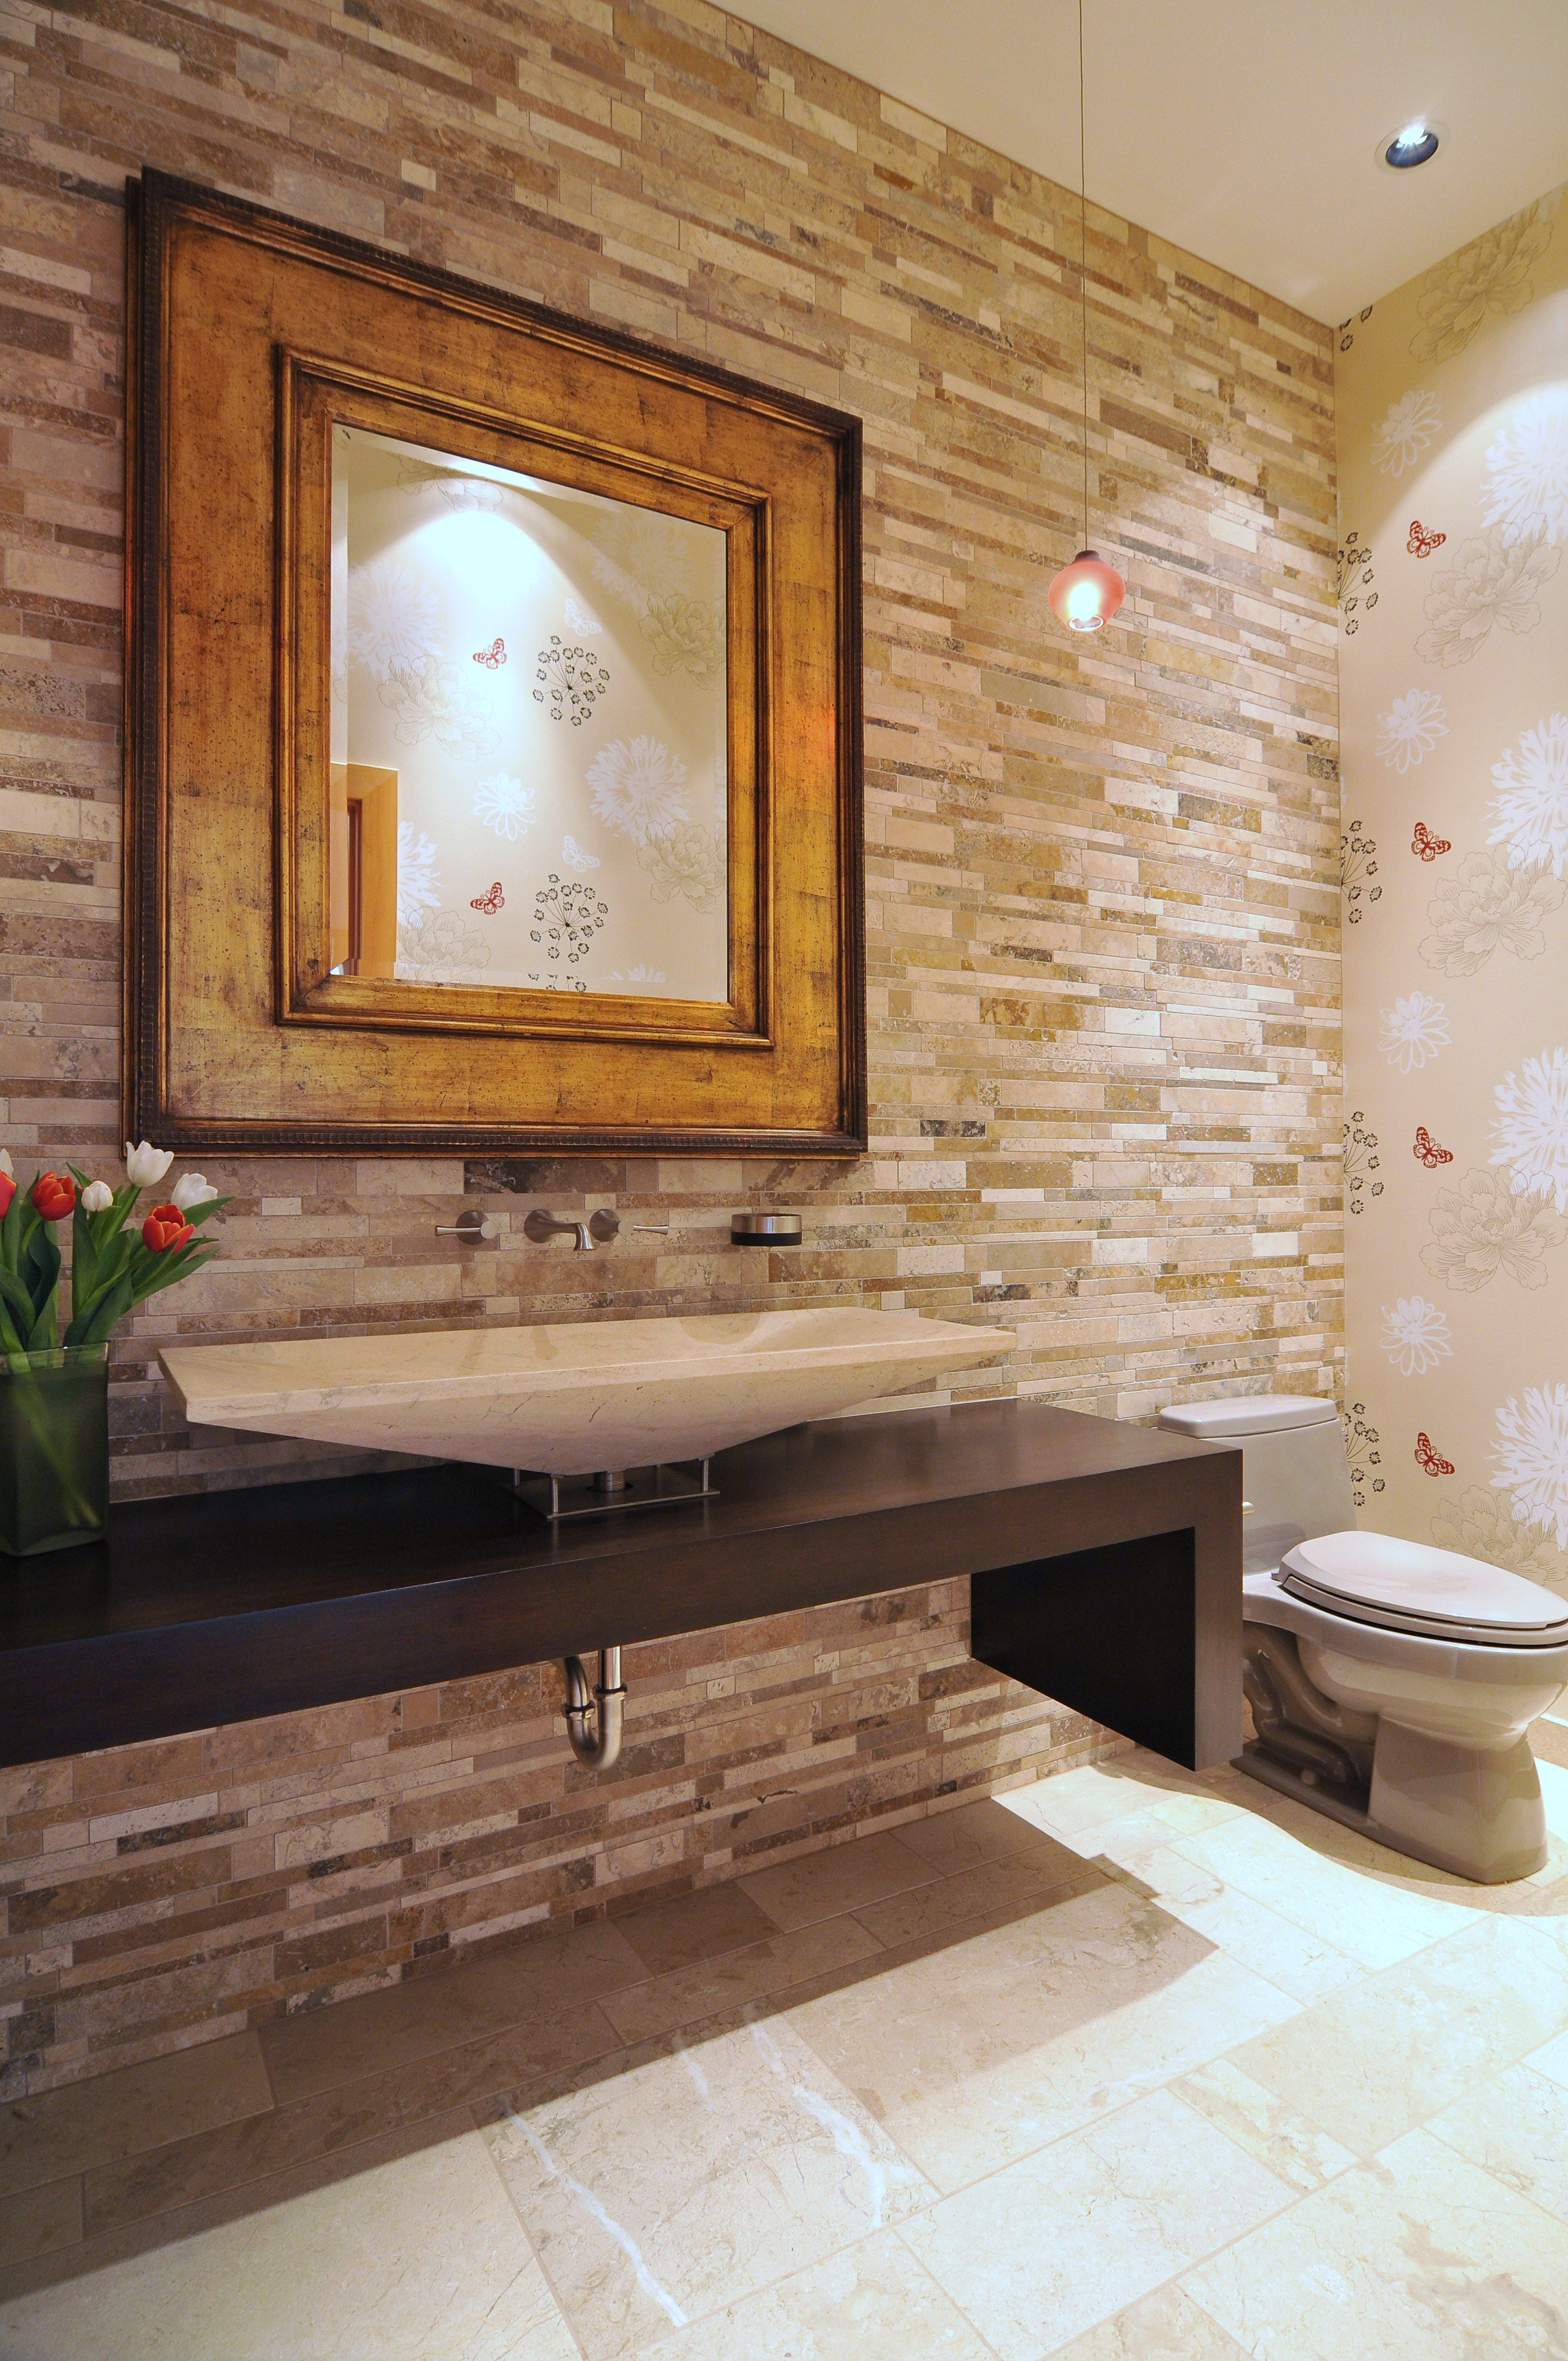 22 Eclectic Ideas Of Bathroom Wall Decor: Powder Room With Full Height Backsplash And Eclectic Wall